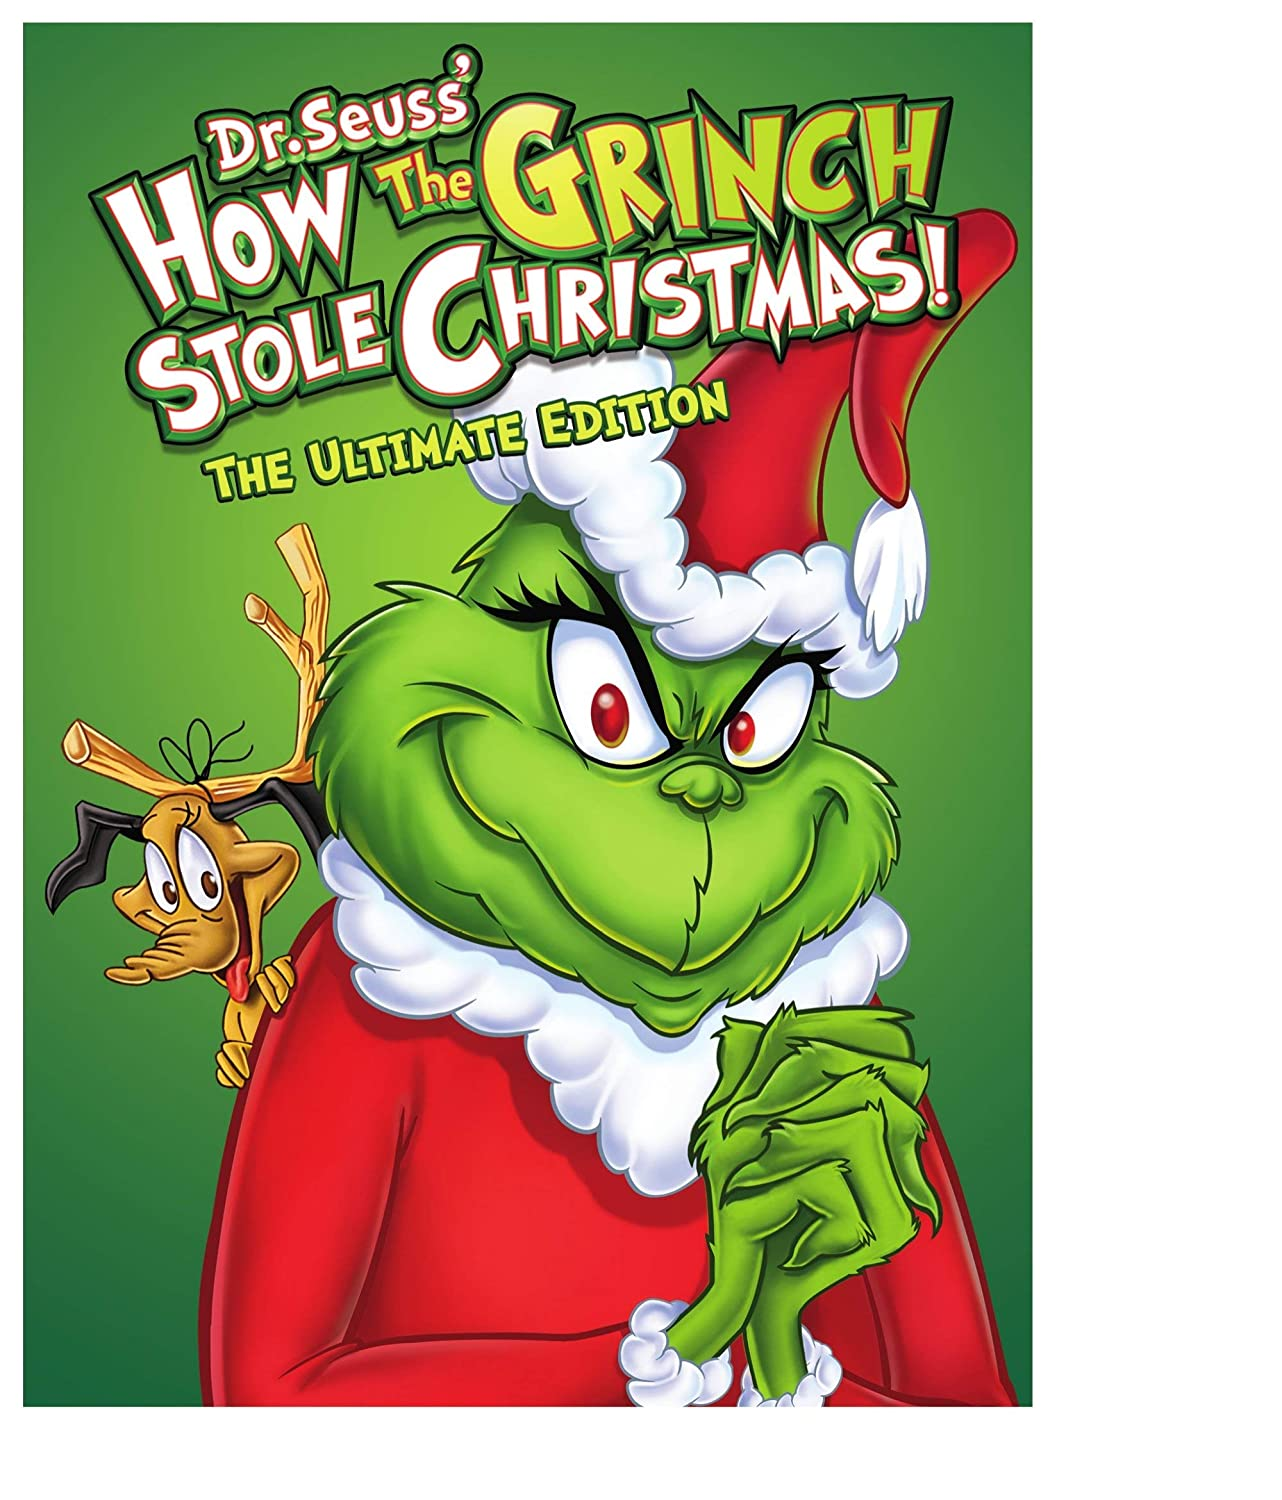 How The Grinch Stole Christmas Dvd Release Date 2020 Amazon.com: How the Grinch Stole Christmas: Ultimate Edition (DVD